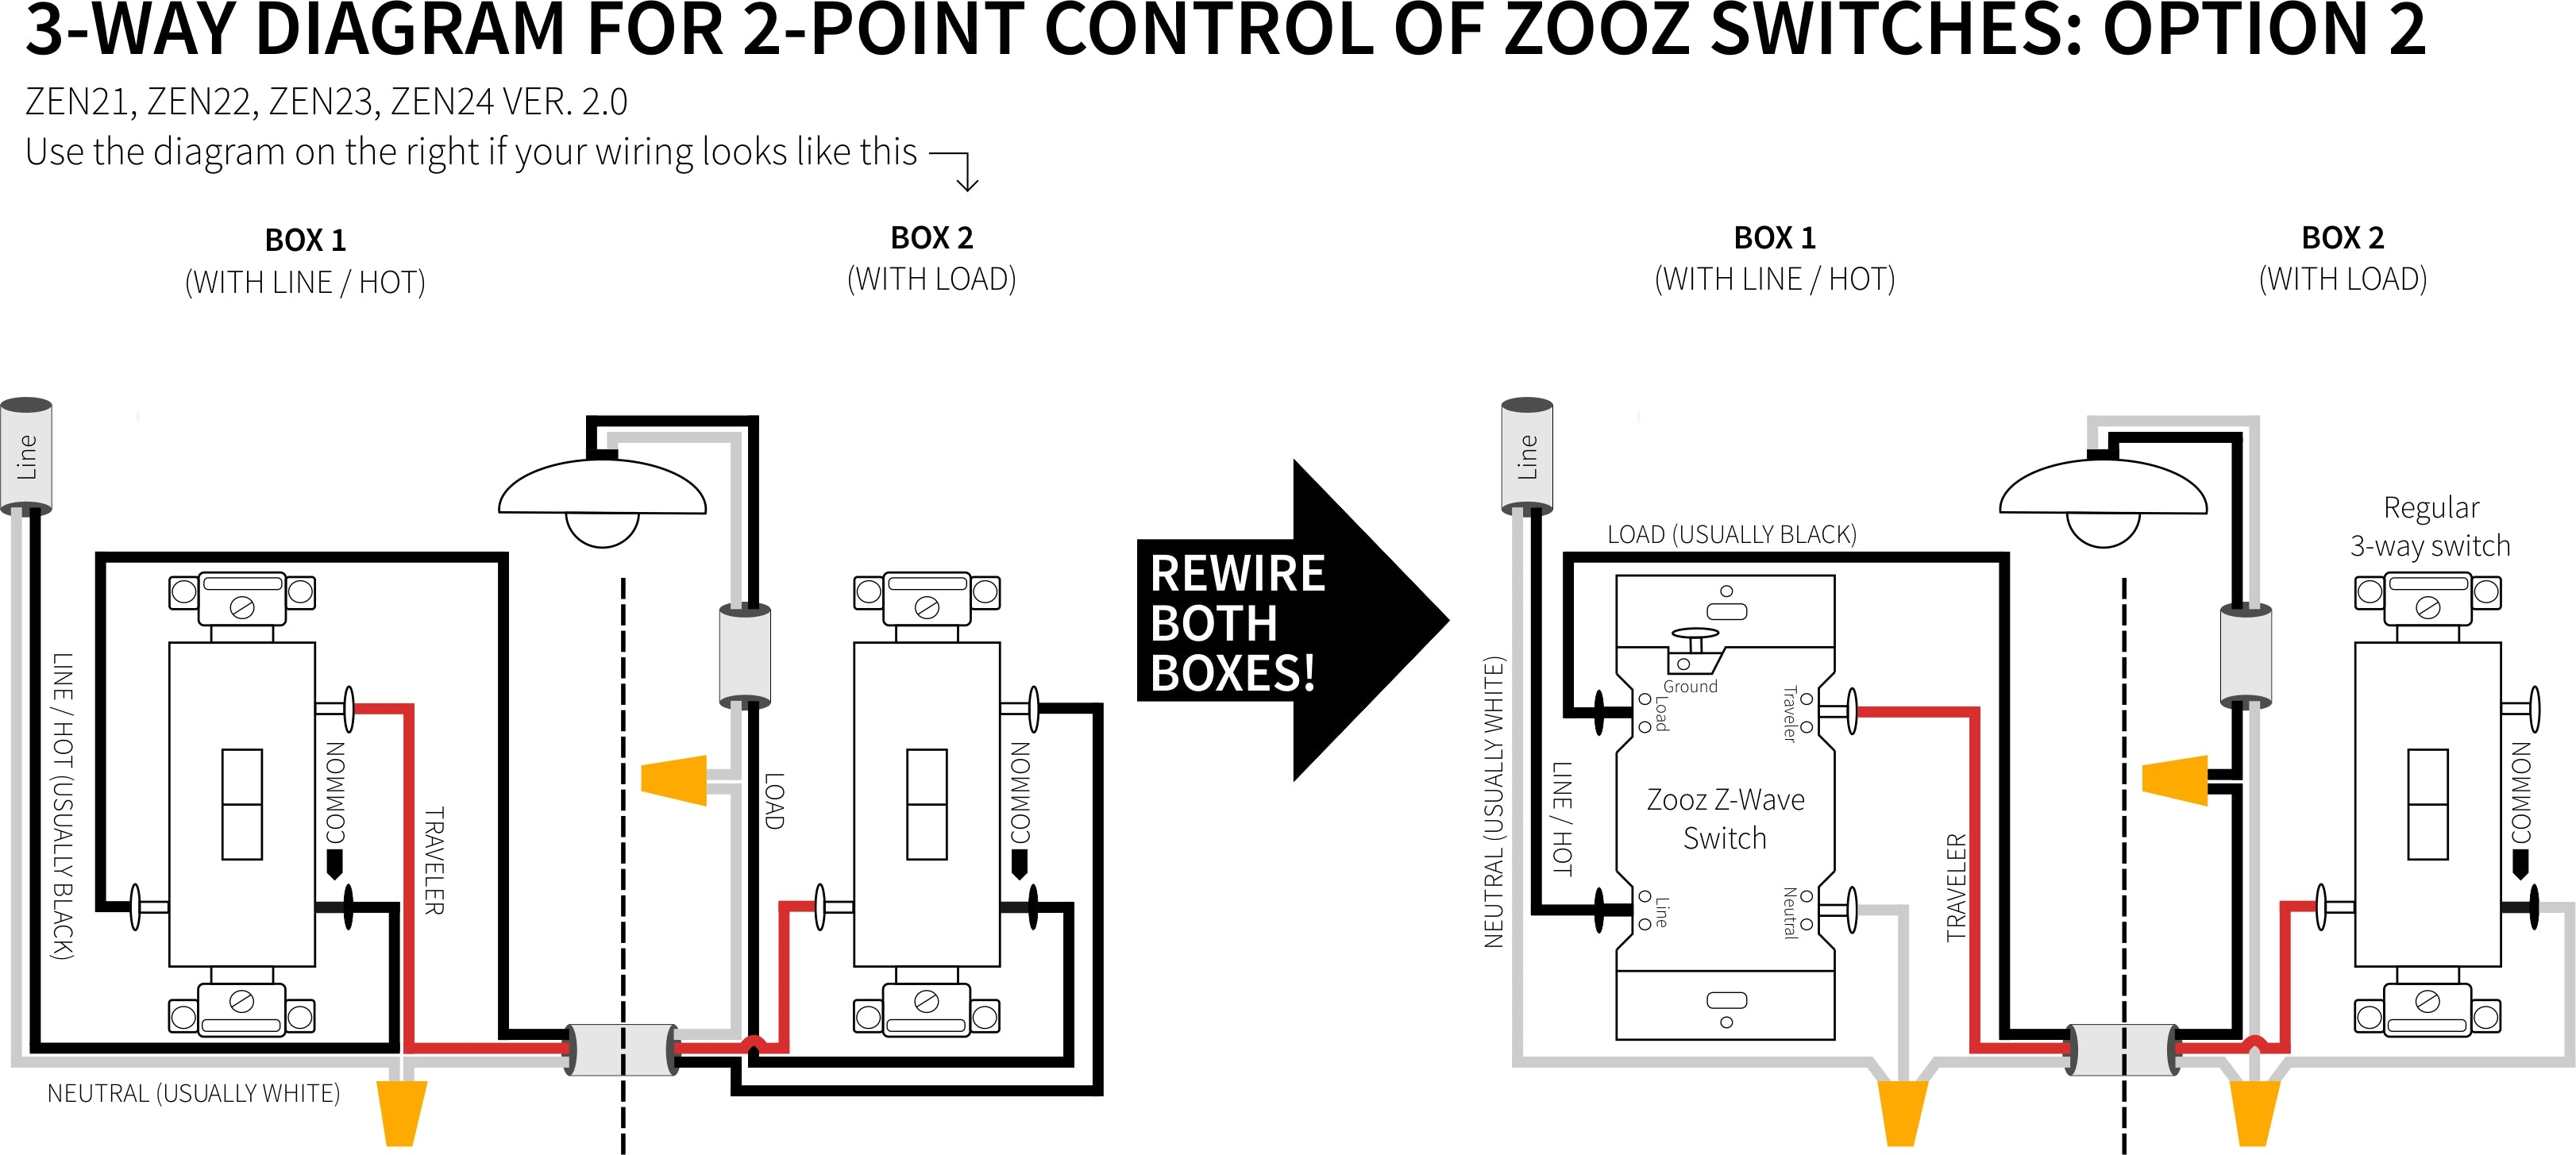 Zooz Z Wave Plus Dimmer Light Switch Zen22 Ver 4 0 The Smartest House